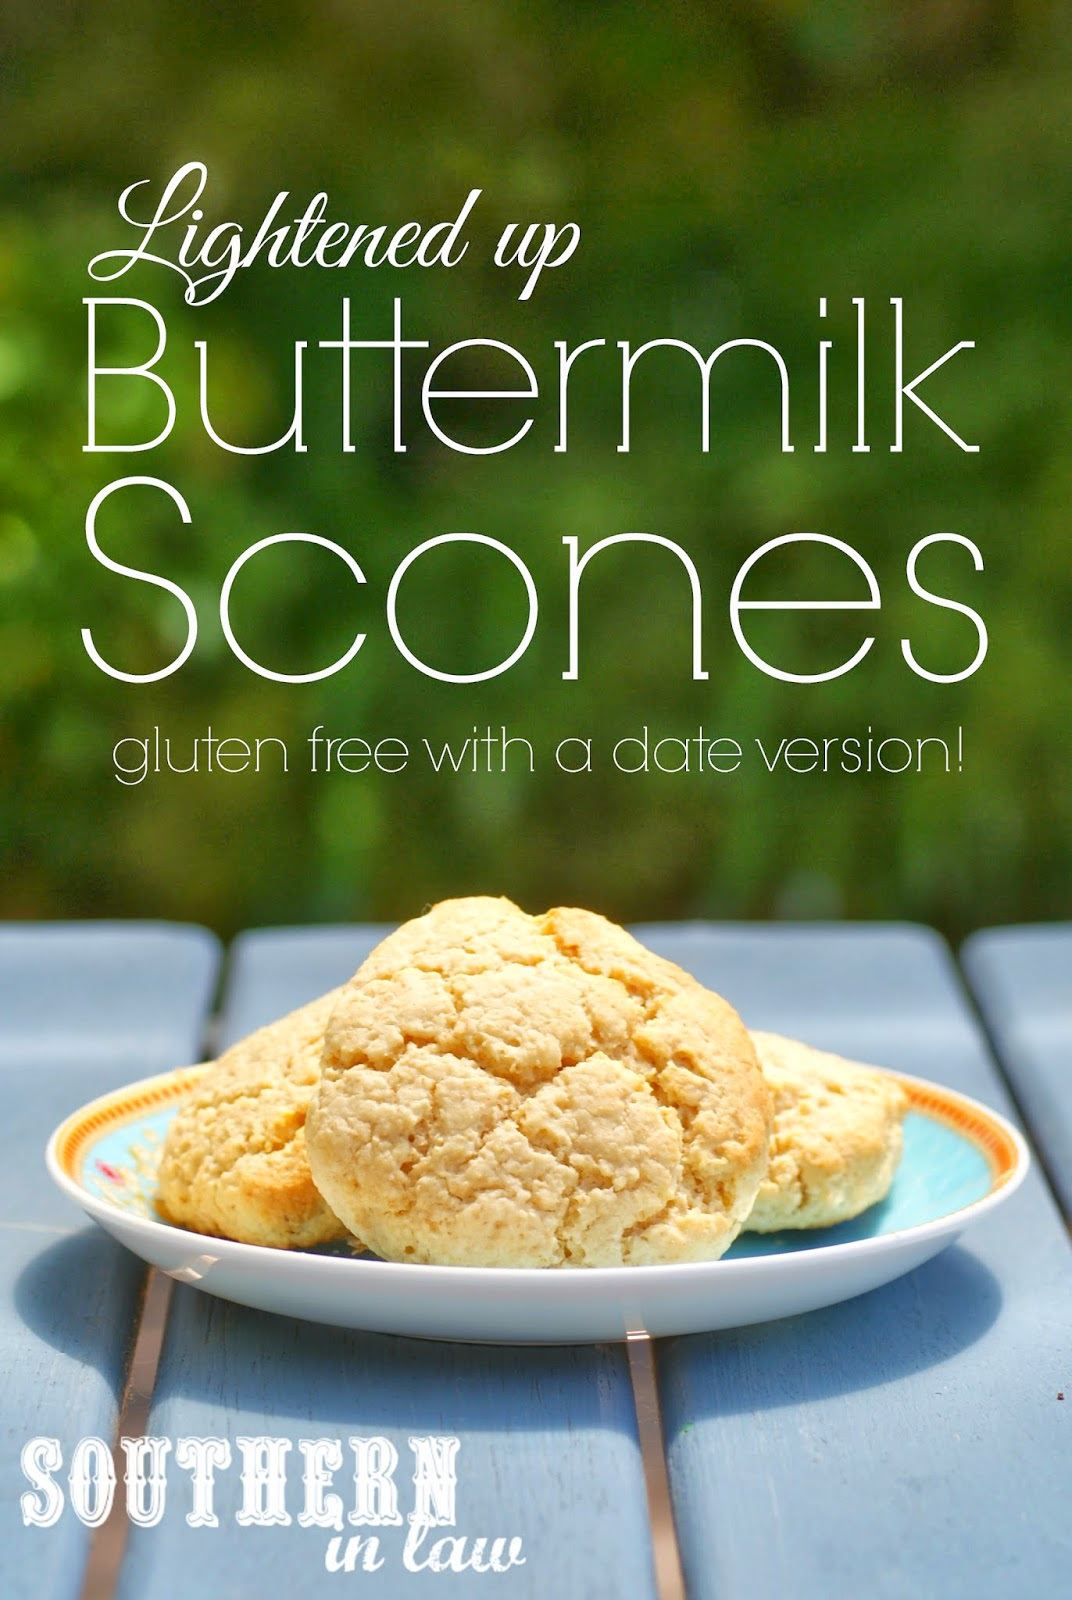 Lightened up Buttermilk Scones - Gluten Free Scone Recipe